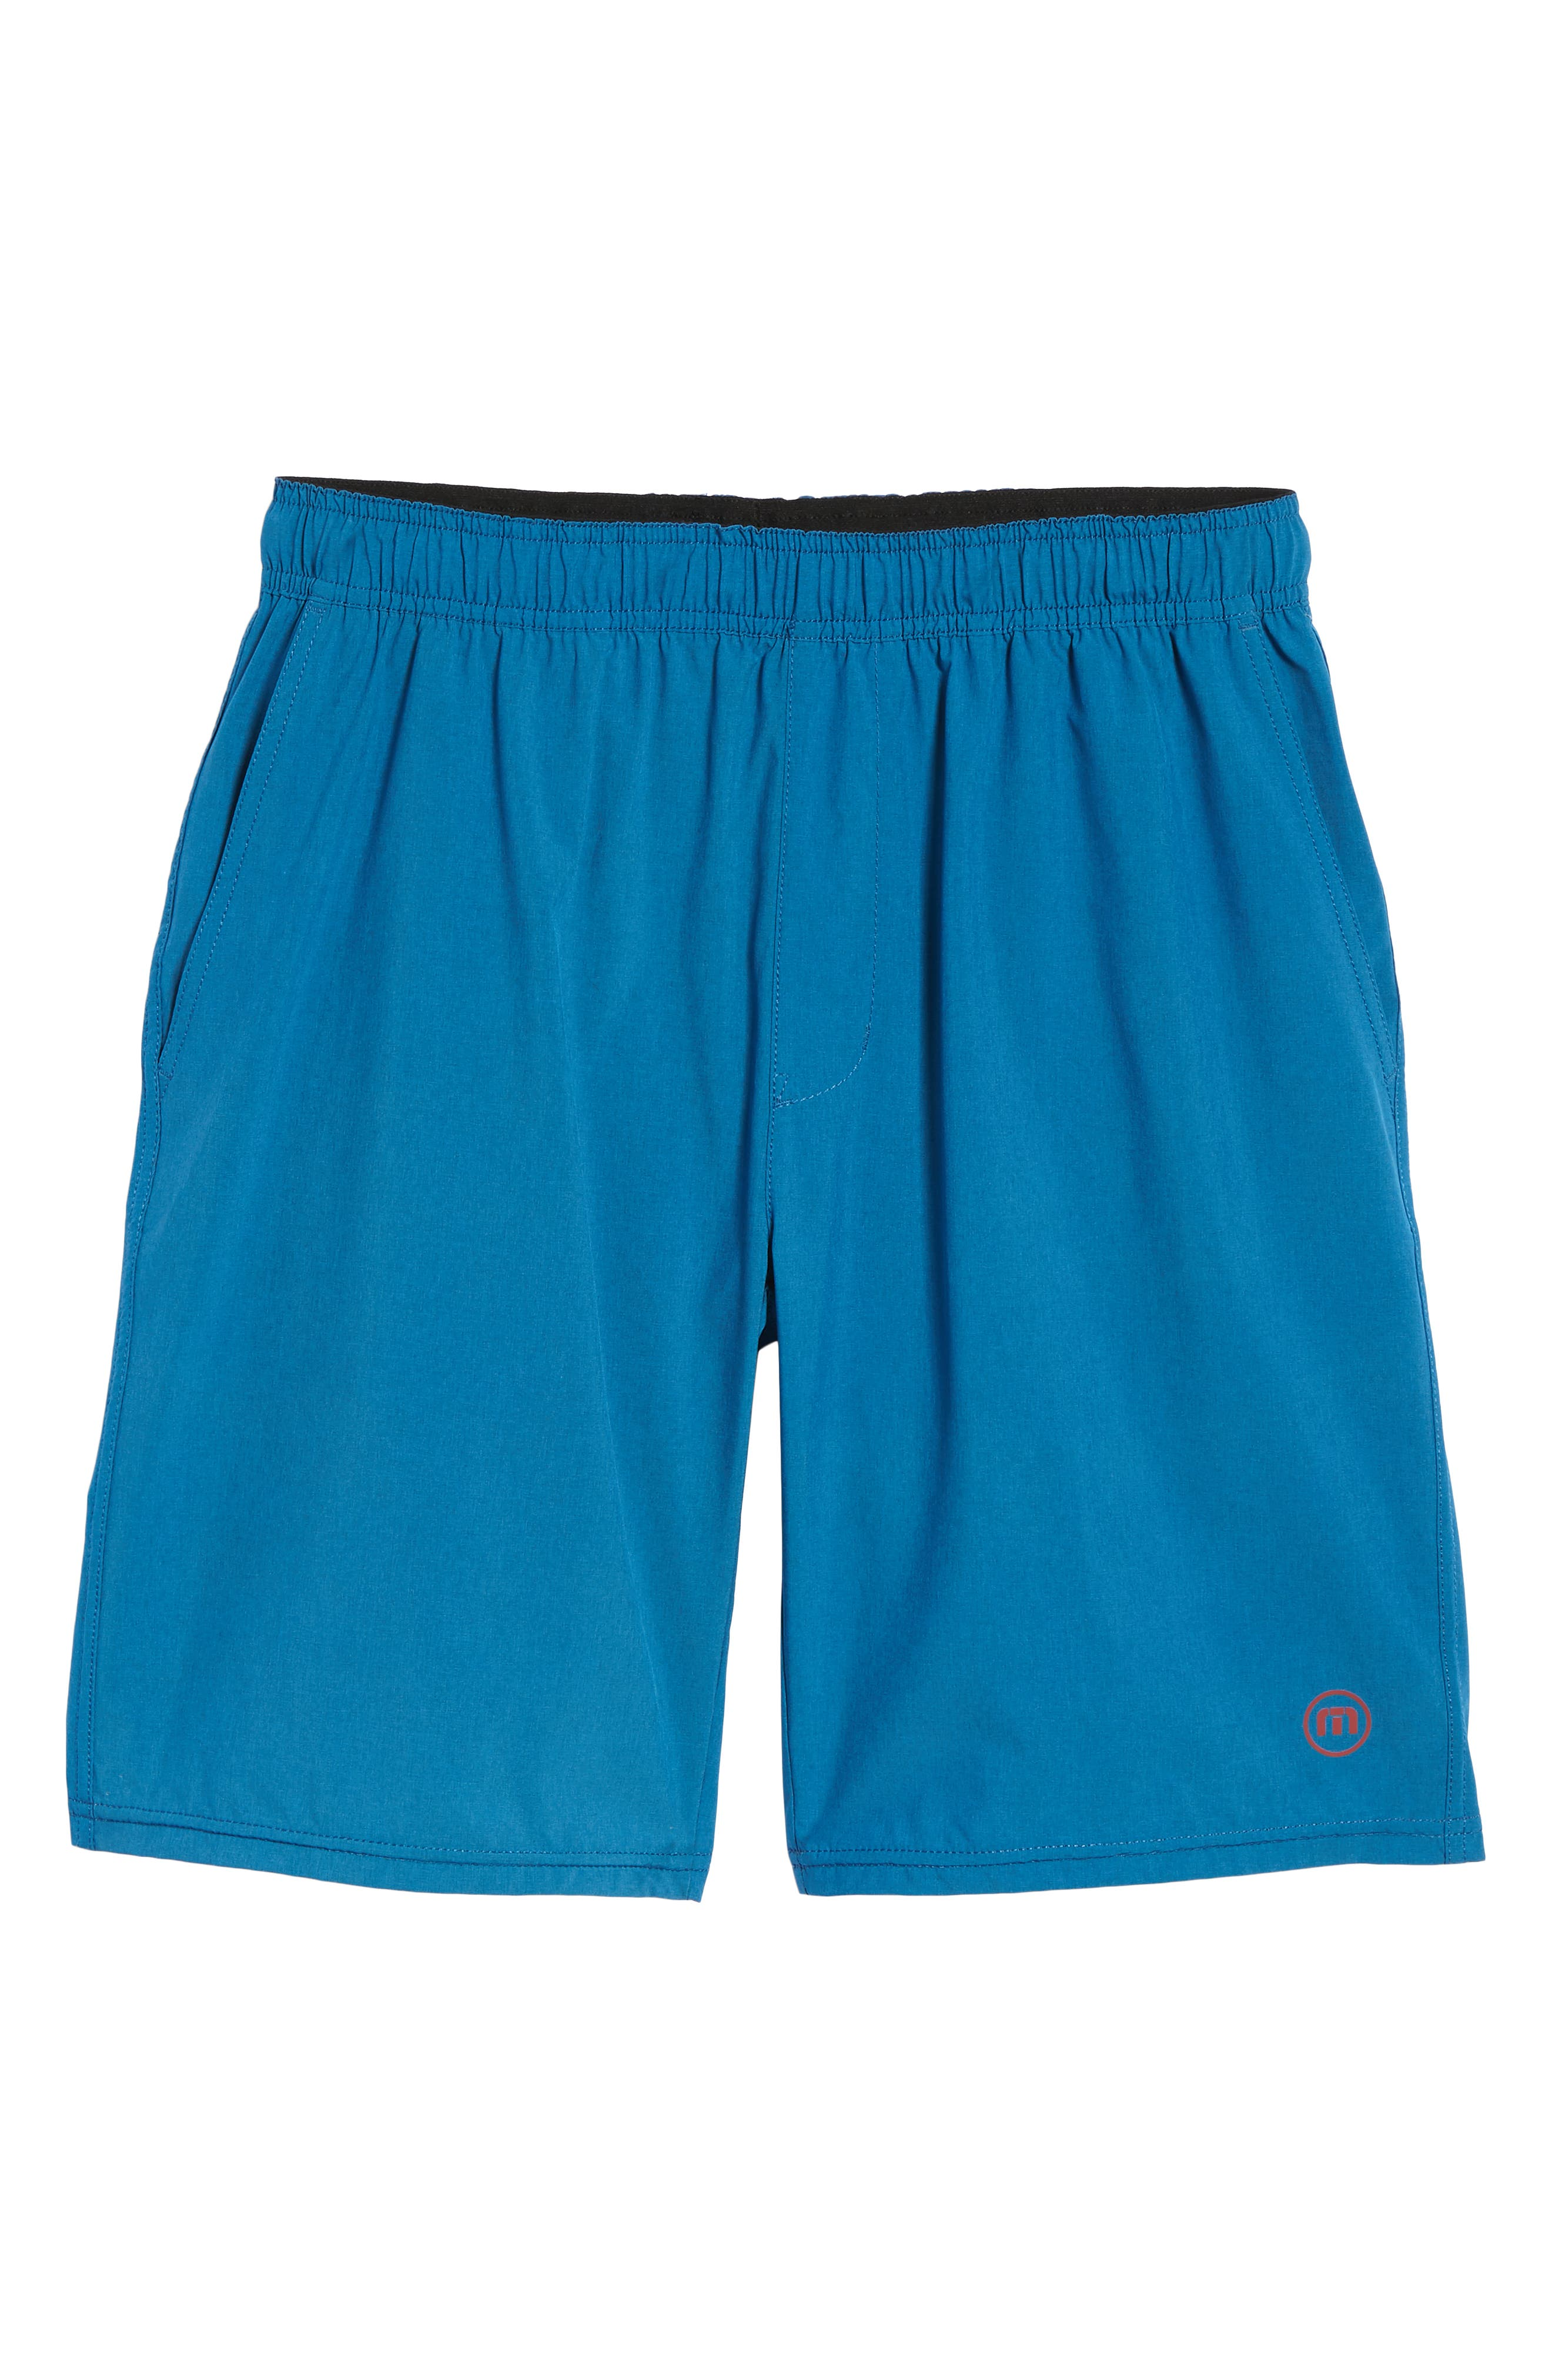 The Pace Performance Shorts,                             Alternate thumbnail 6, color,                             400